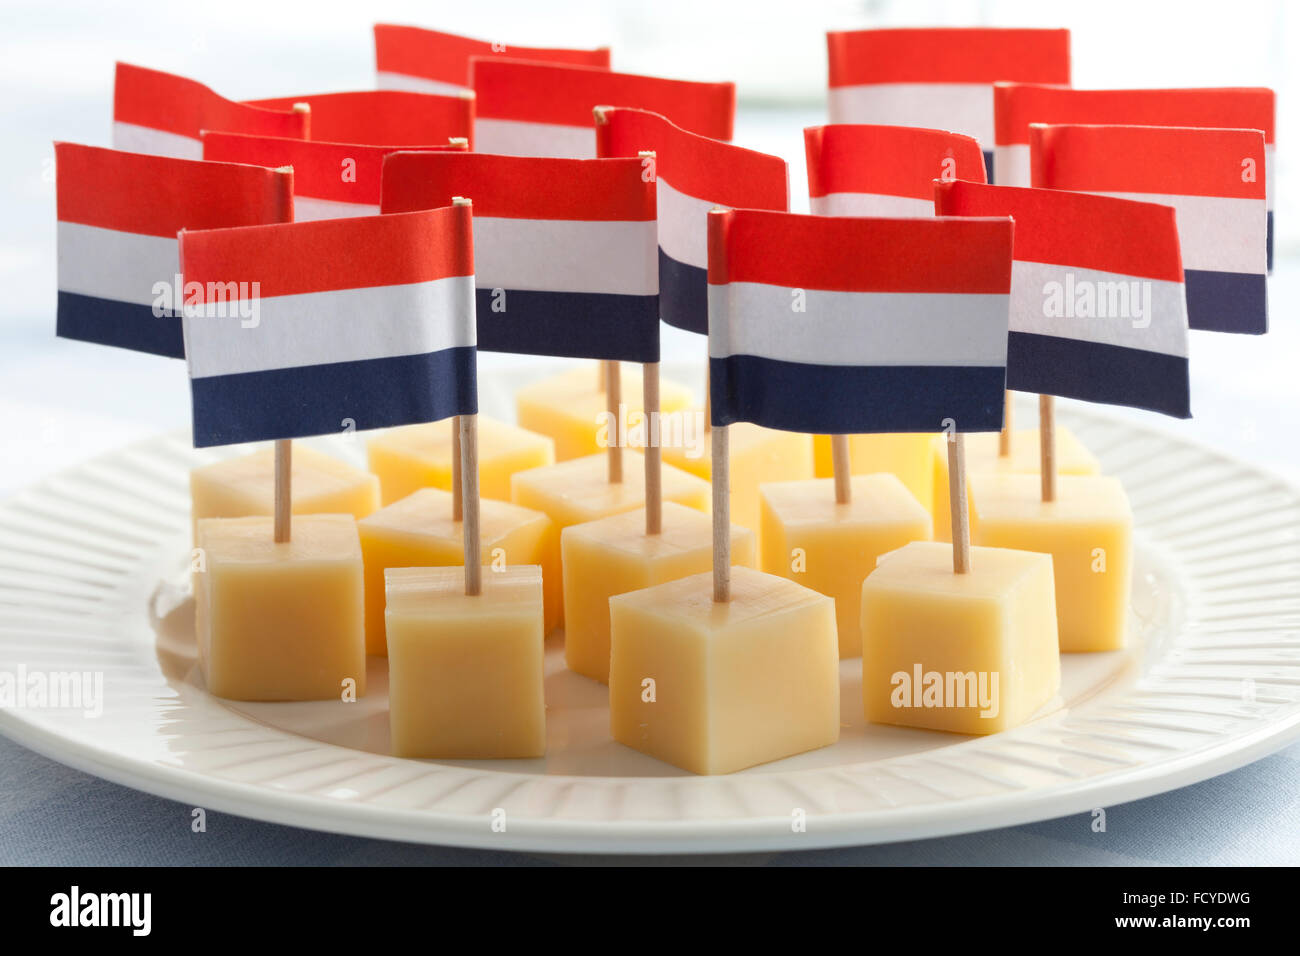 Dish with Edam cheese blocks with flags close up - Stock Image